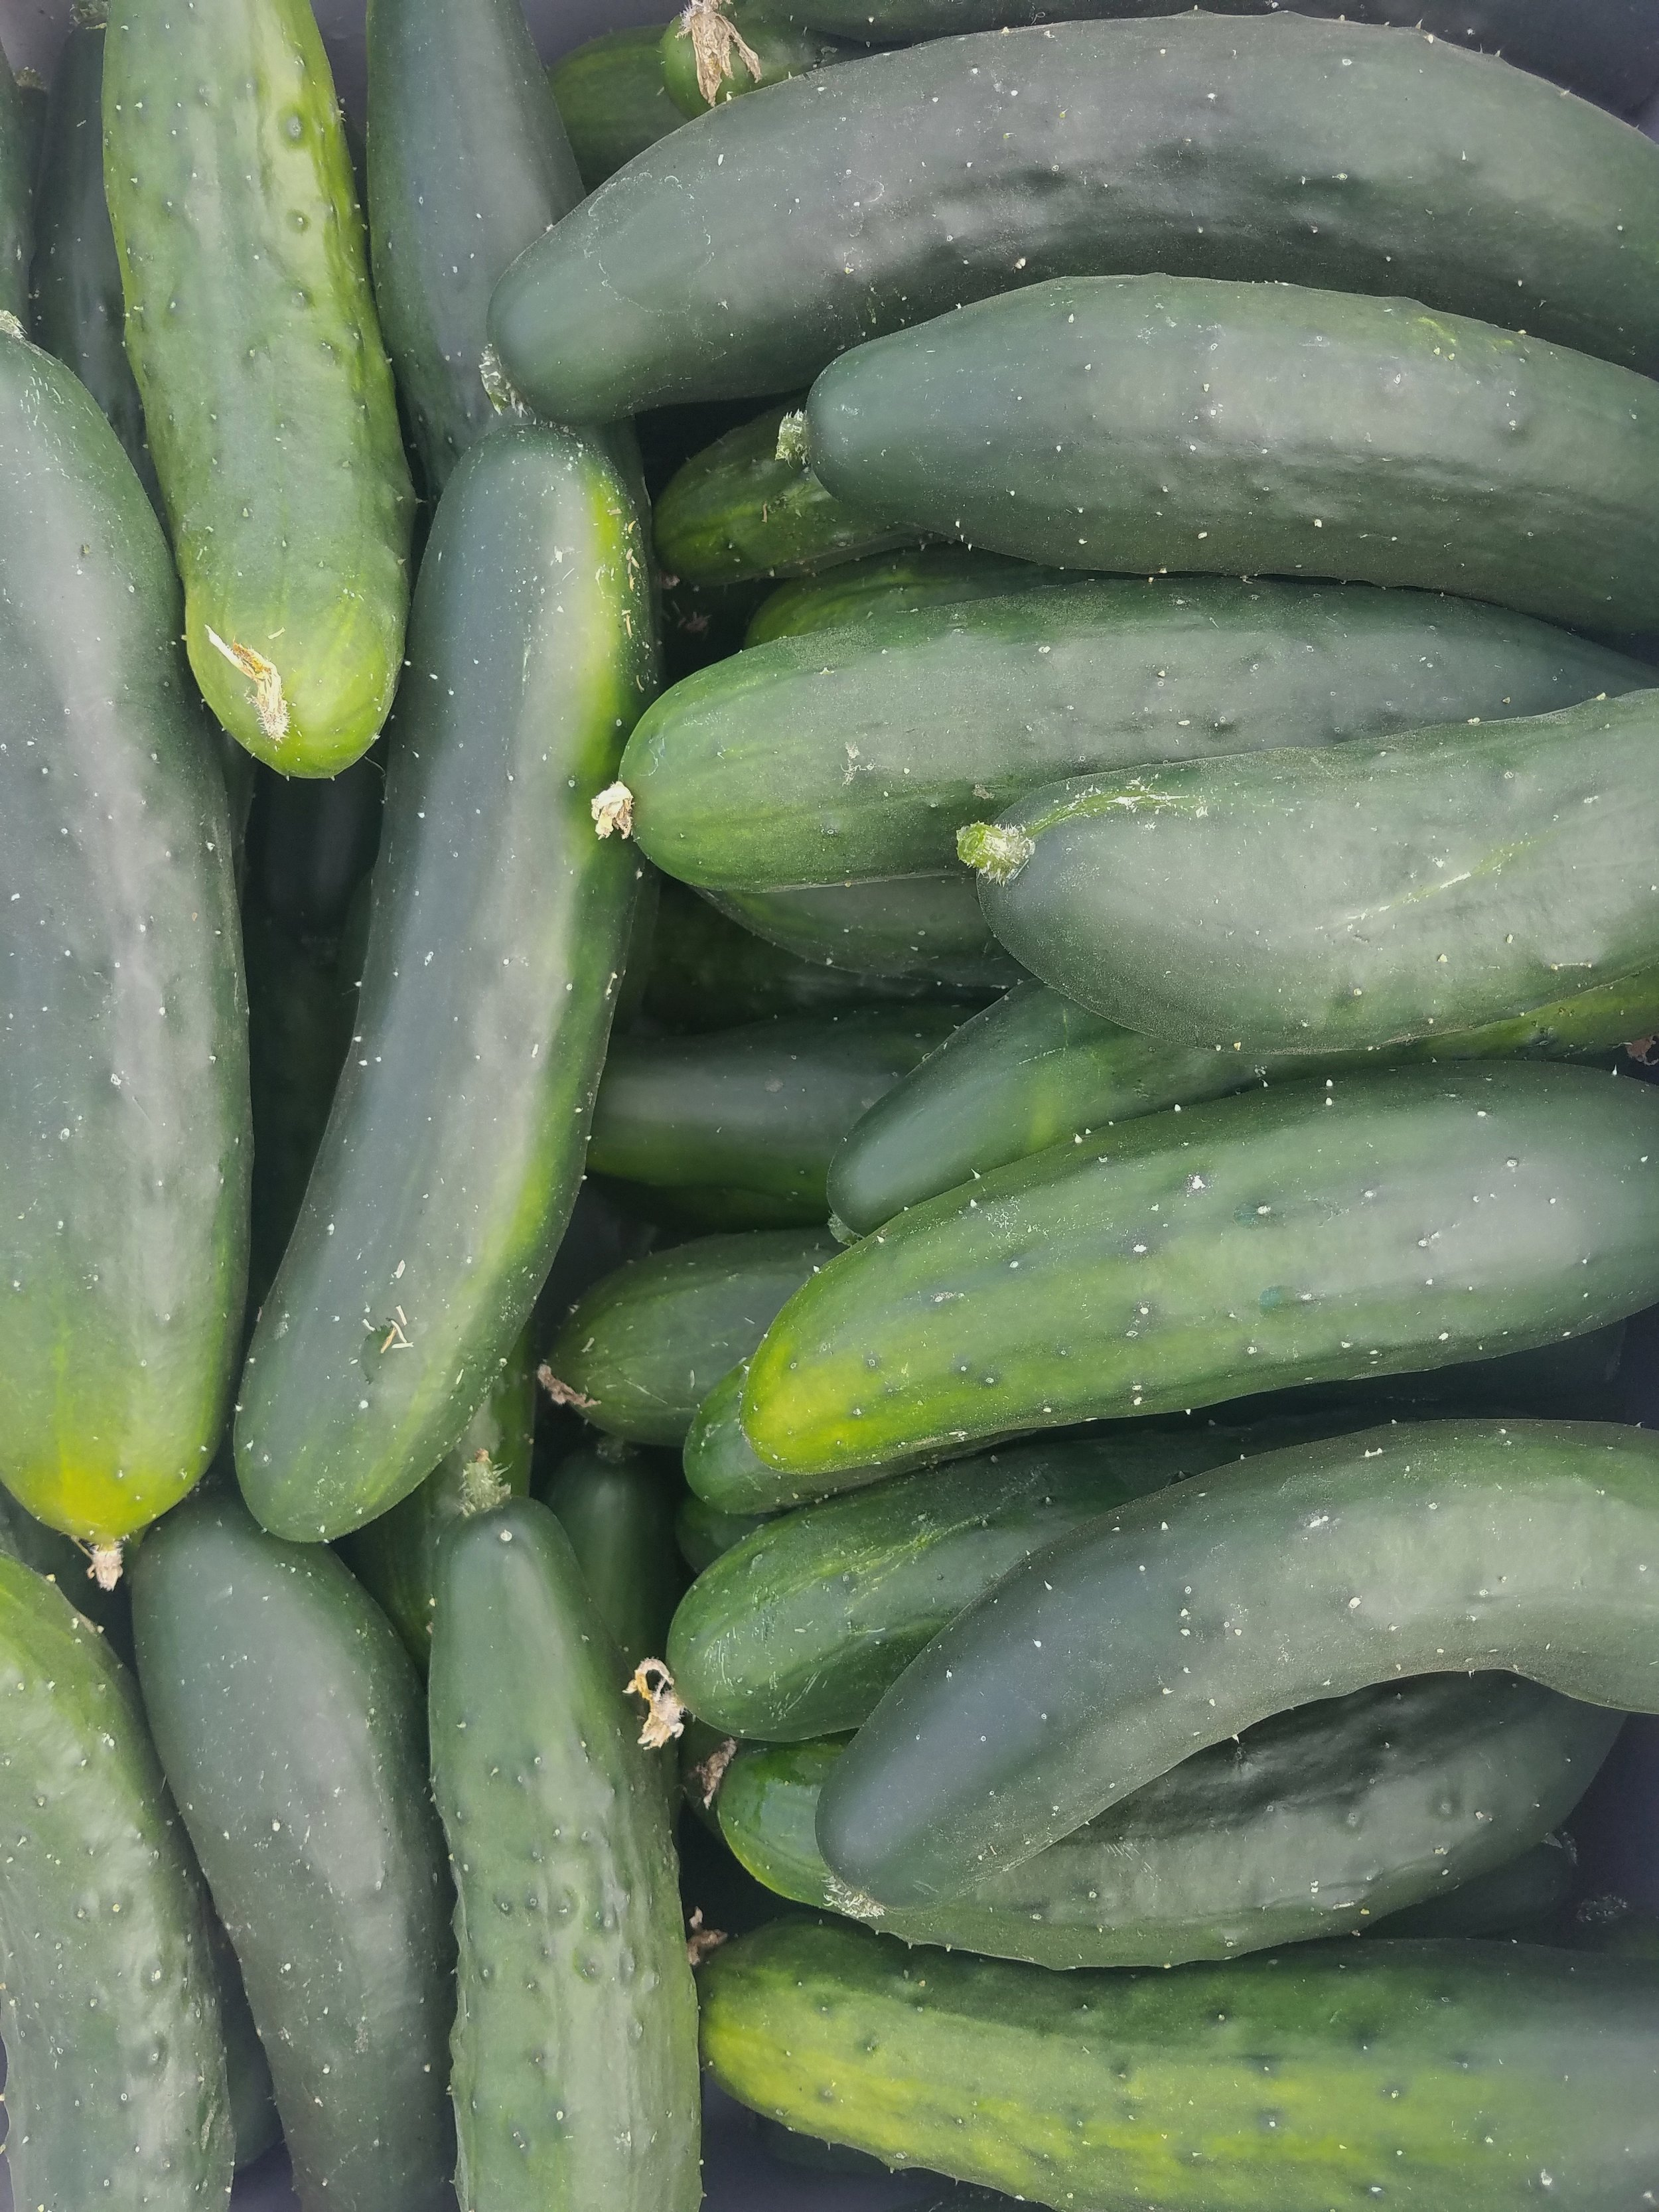 Cucumber - A classic variety. Perfect for salads, snacks, juicing